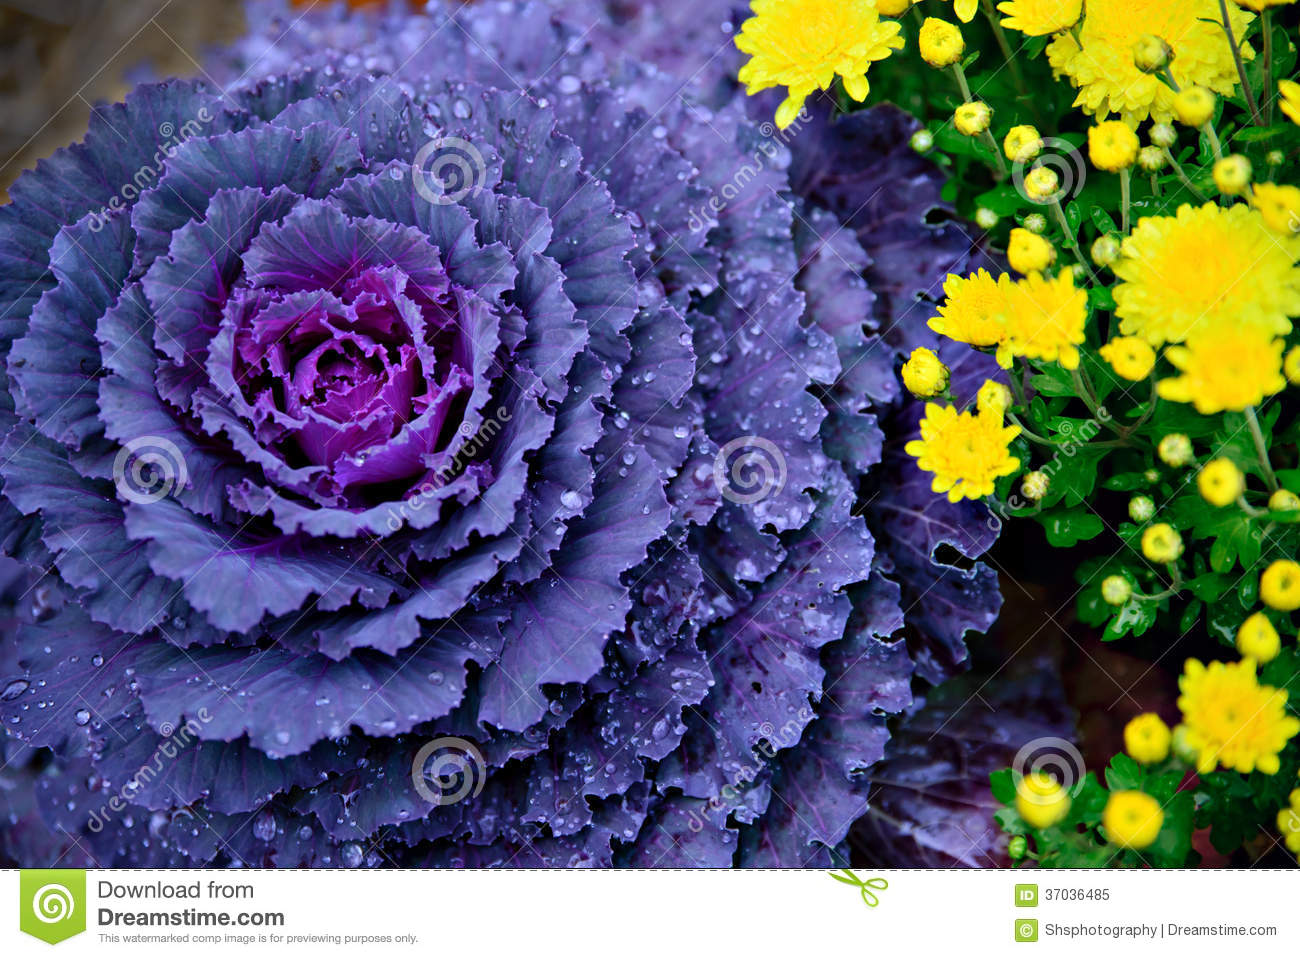 how to grow purple cabbage